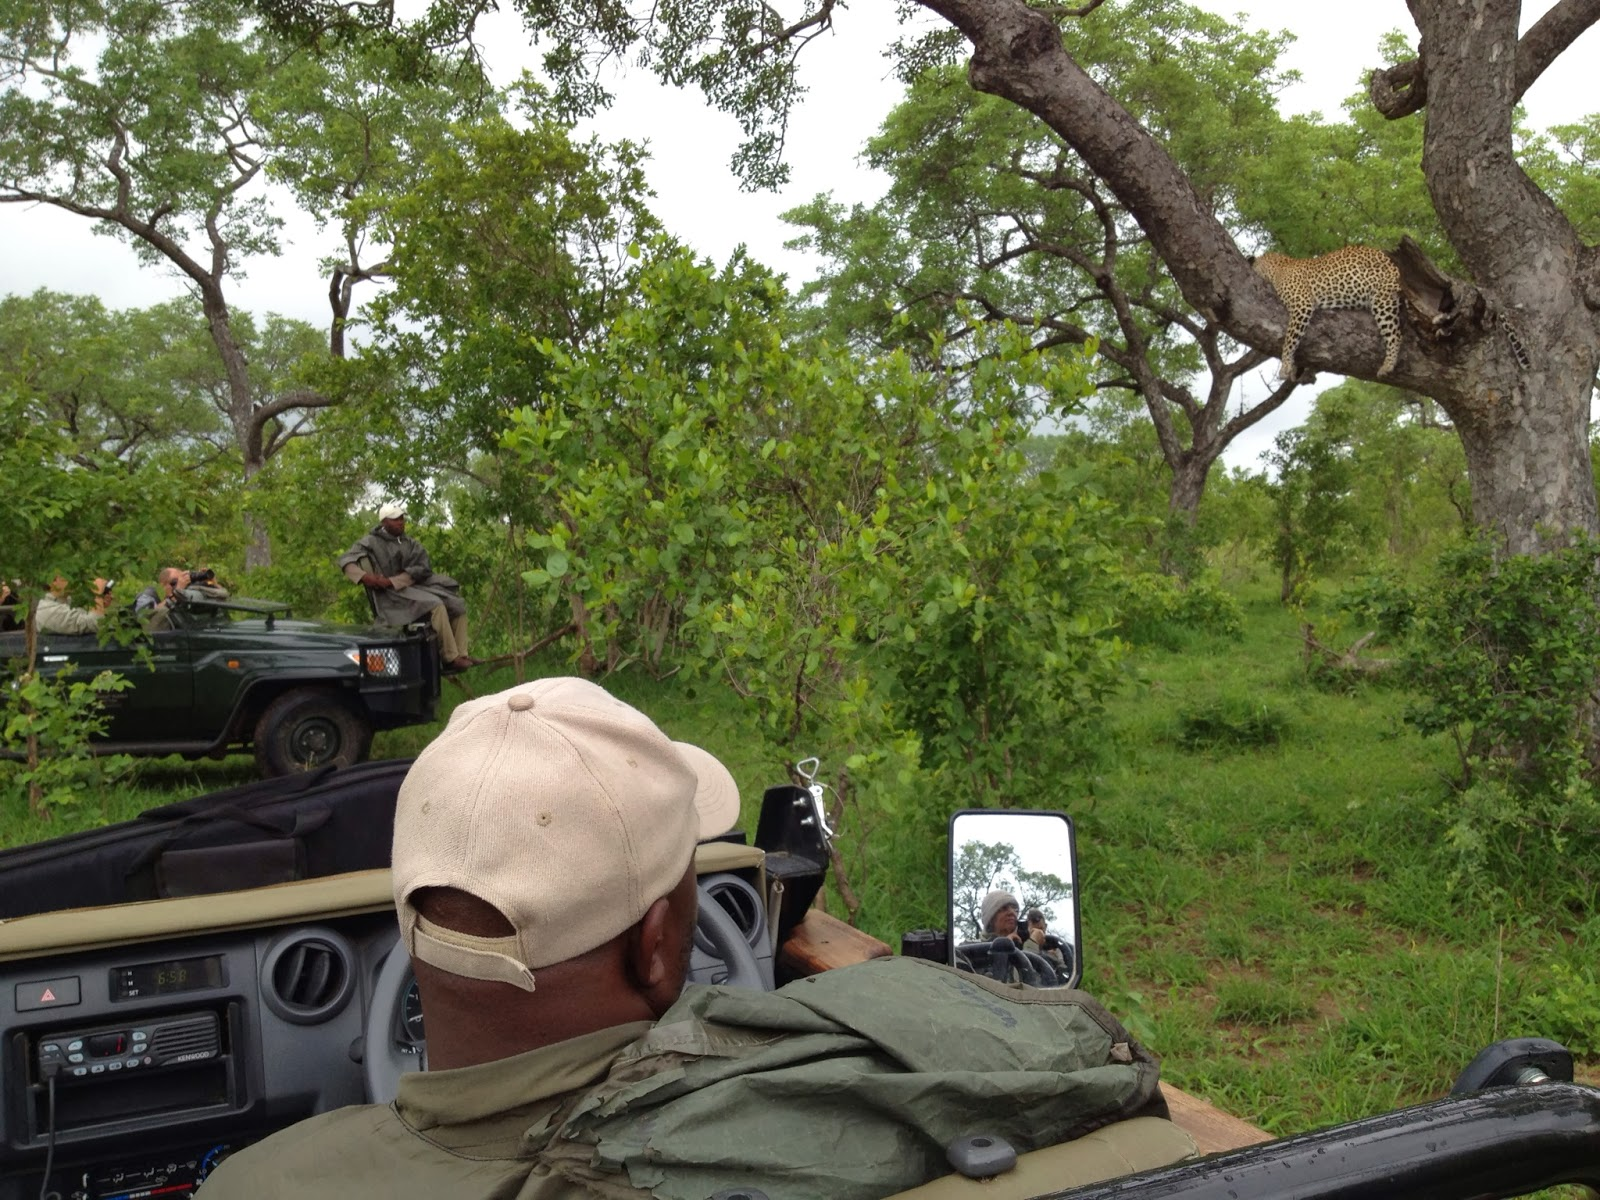 Sabi Sands - The leopard is busy snoozing